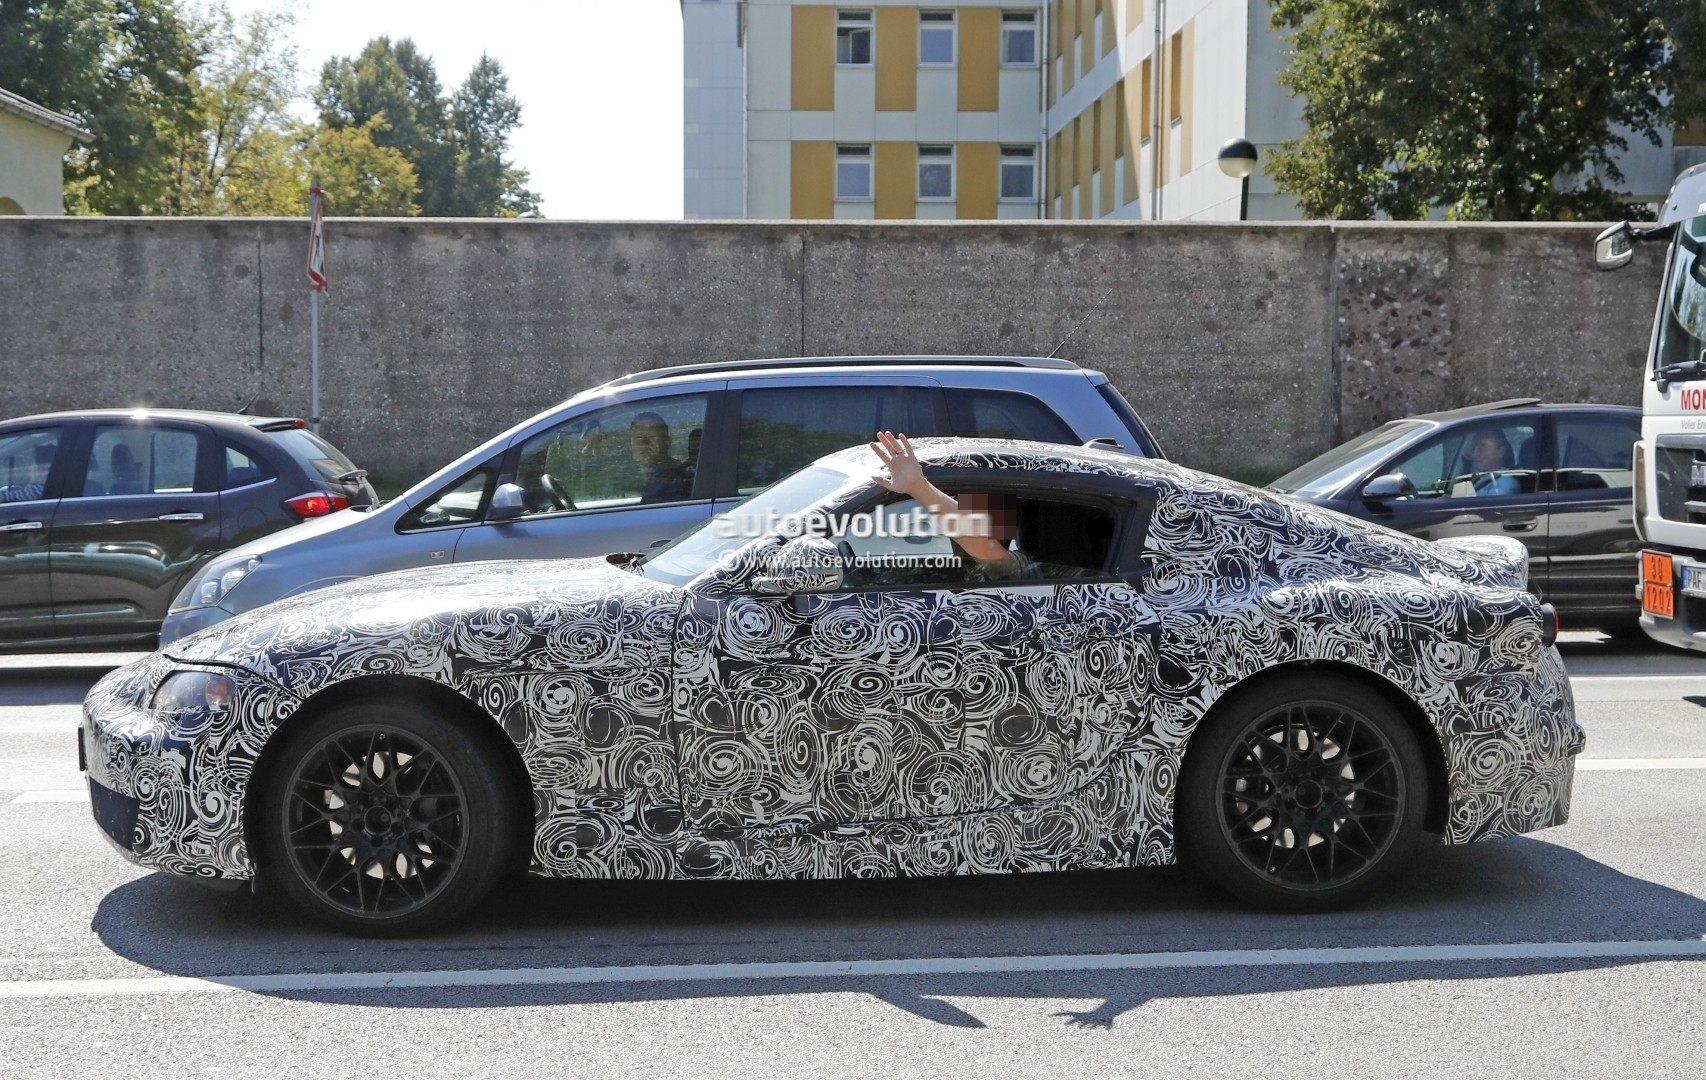 Toyota Supra Makes Spyshot Debut, Coupe Prototype Shows BMW Interior ...